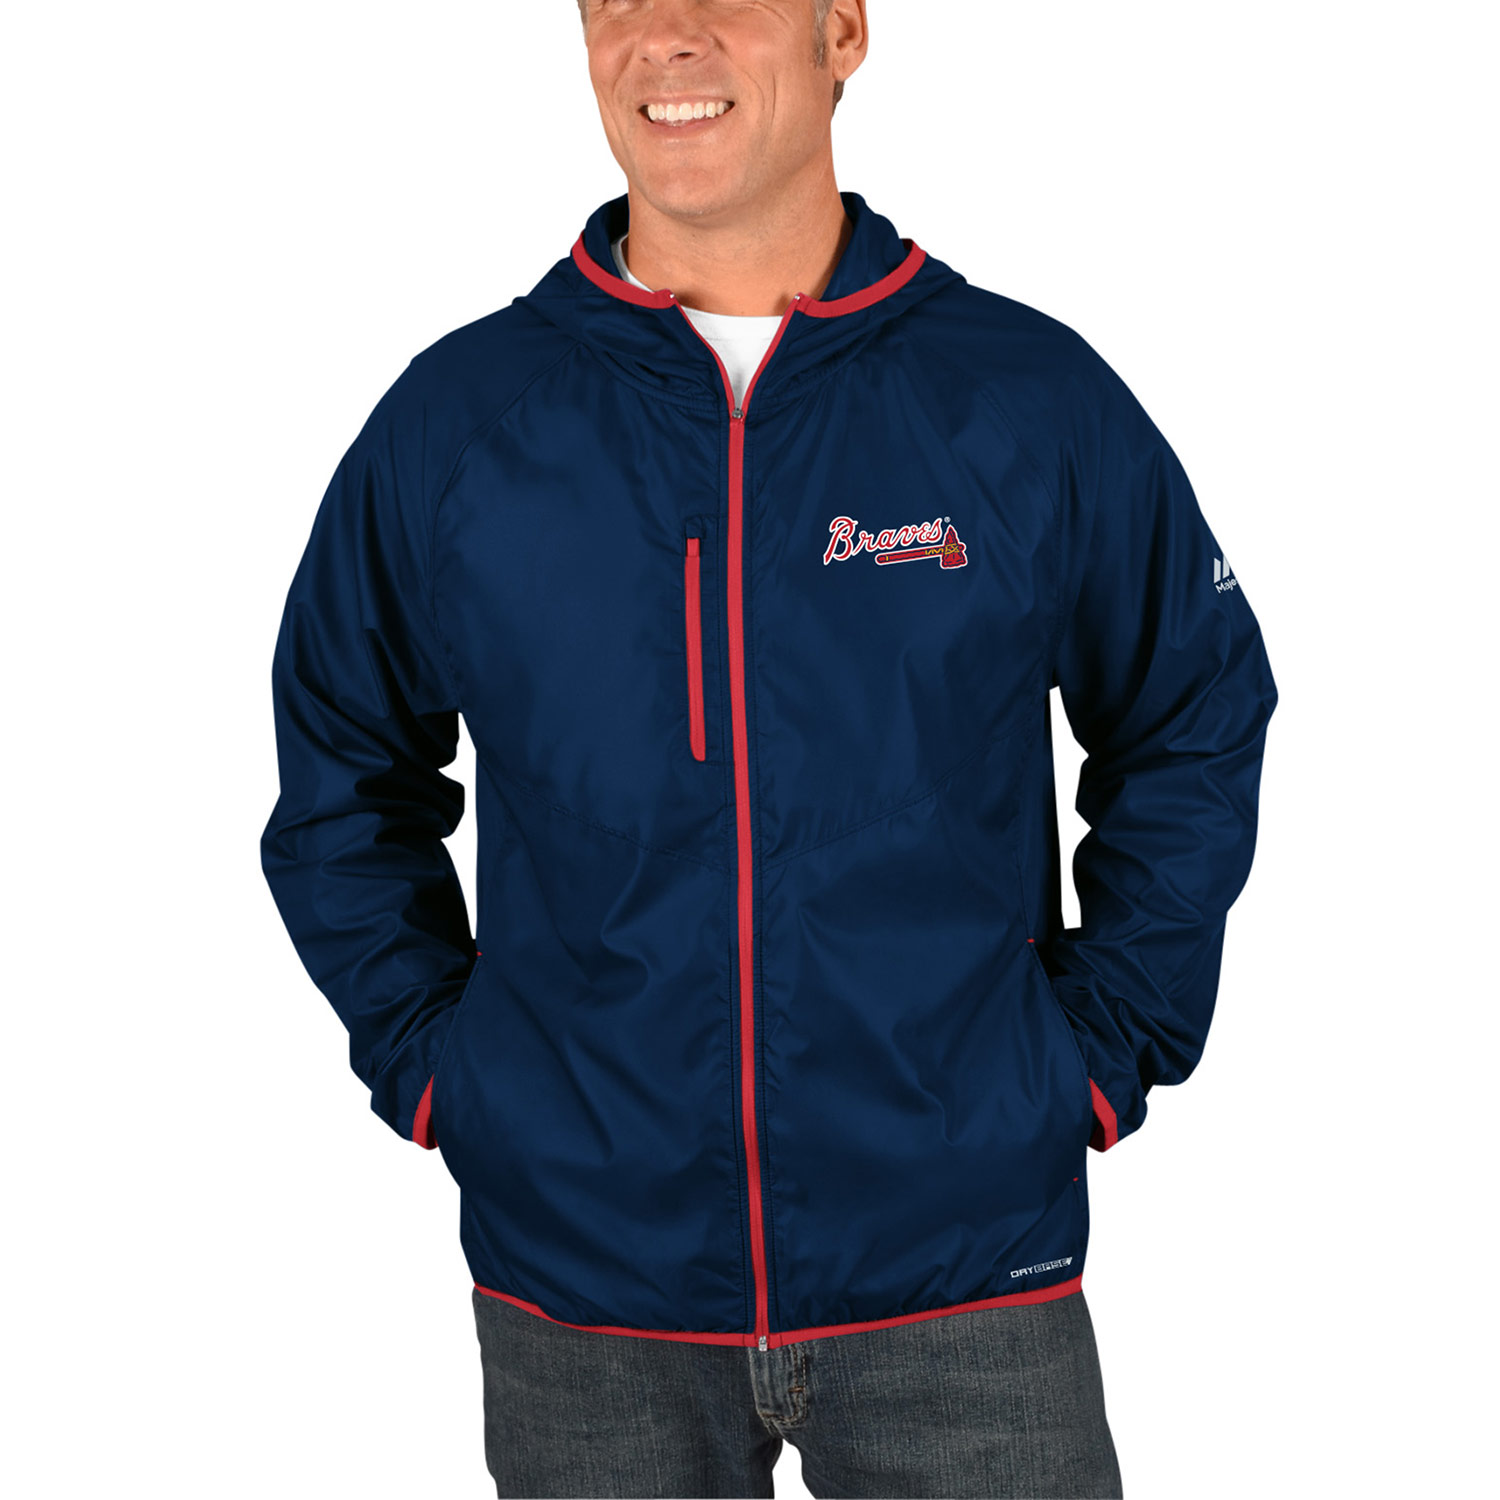 Atlanta Braves Majestic Strong Will Dry Base Full-Zip Hooded Jacket Navy by MAJESTIC LSG